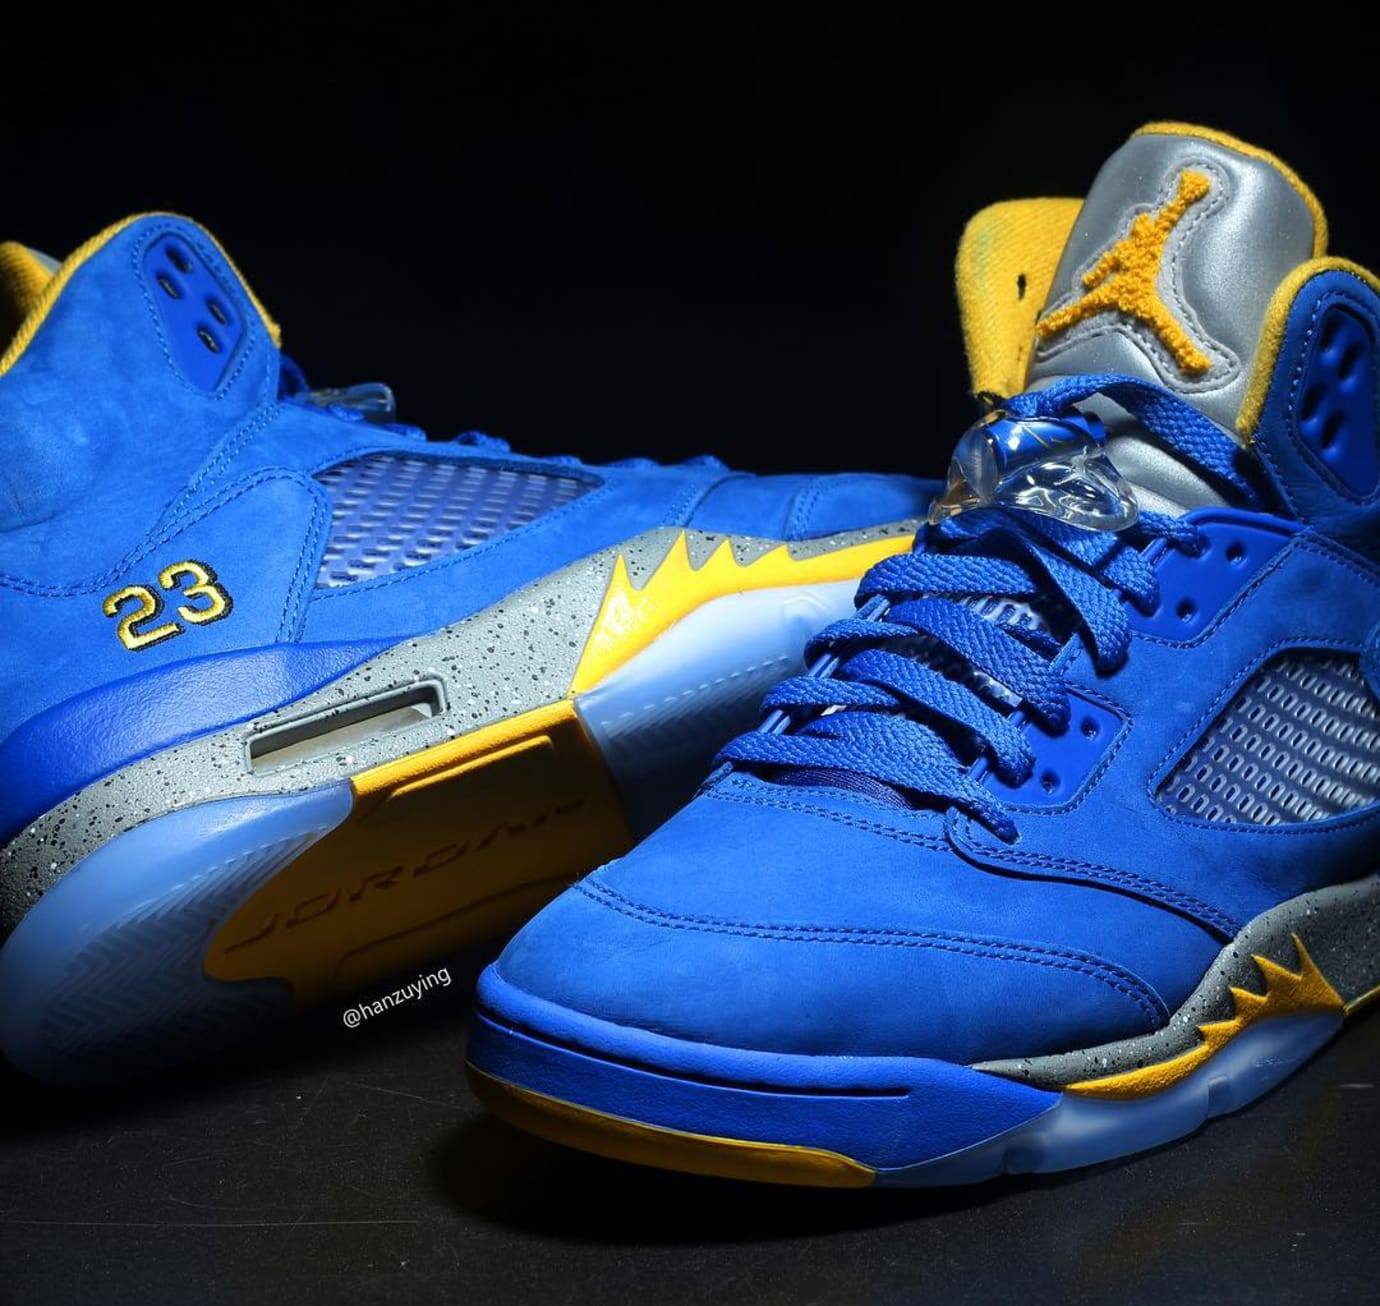 check out 1ed3f ee865 Image via Instagram   hanzuying Air Jordan 4 JSP  Laney  Varsity Royal  CS2720-400